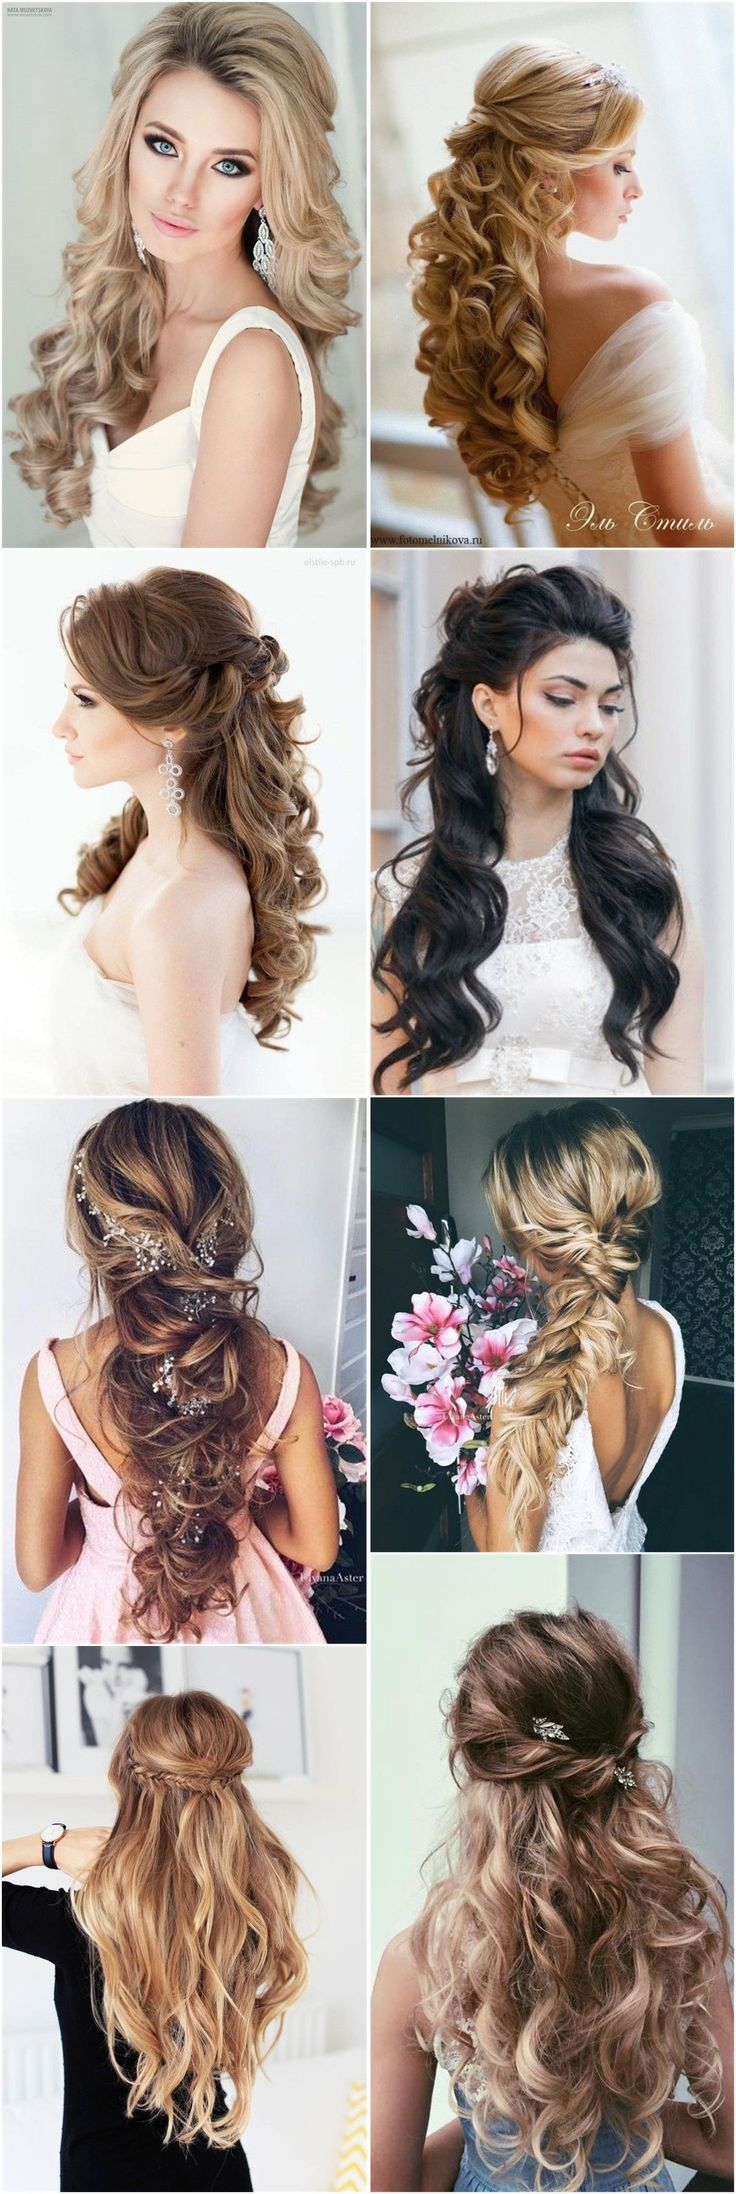 18 Creative And Unique Wedding Hairstyles For Long Hair: Best 25+ Casual Braided Hairstyles Ideas On Pinterest